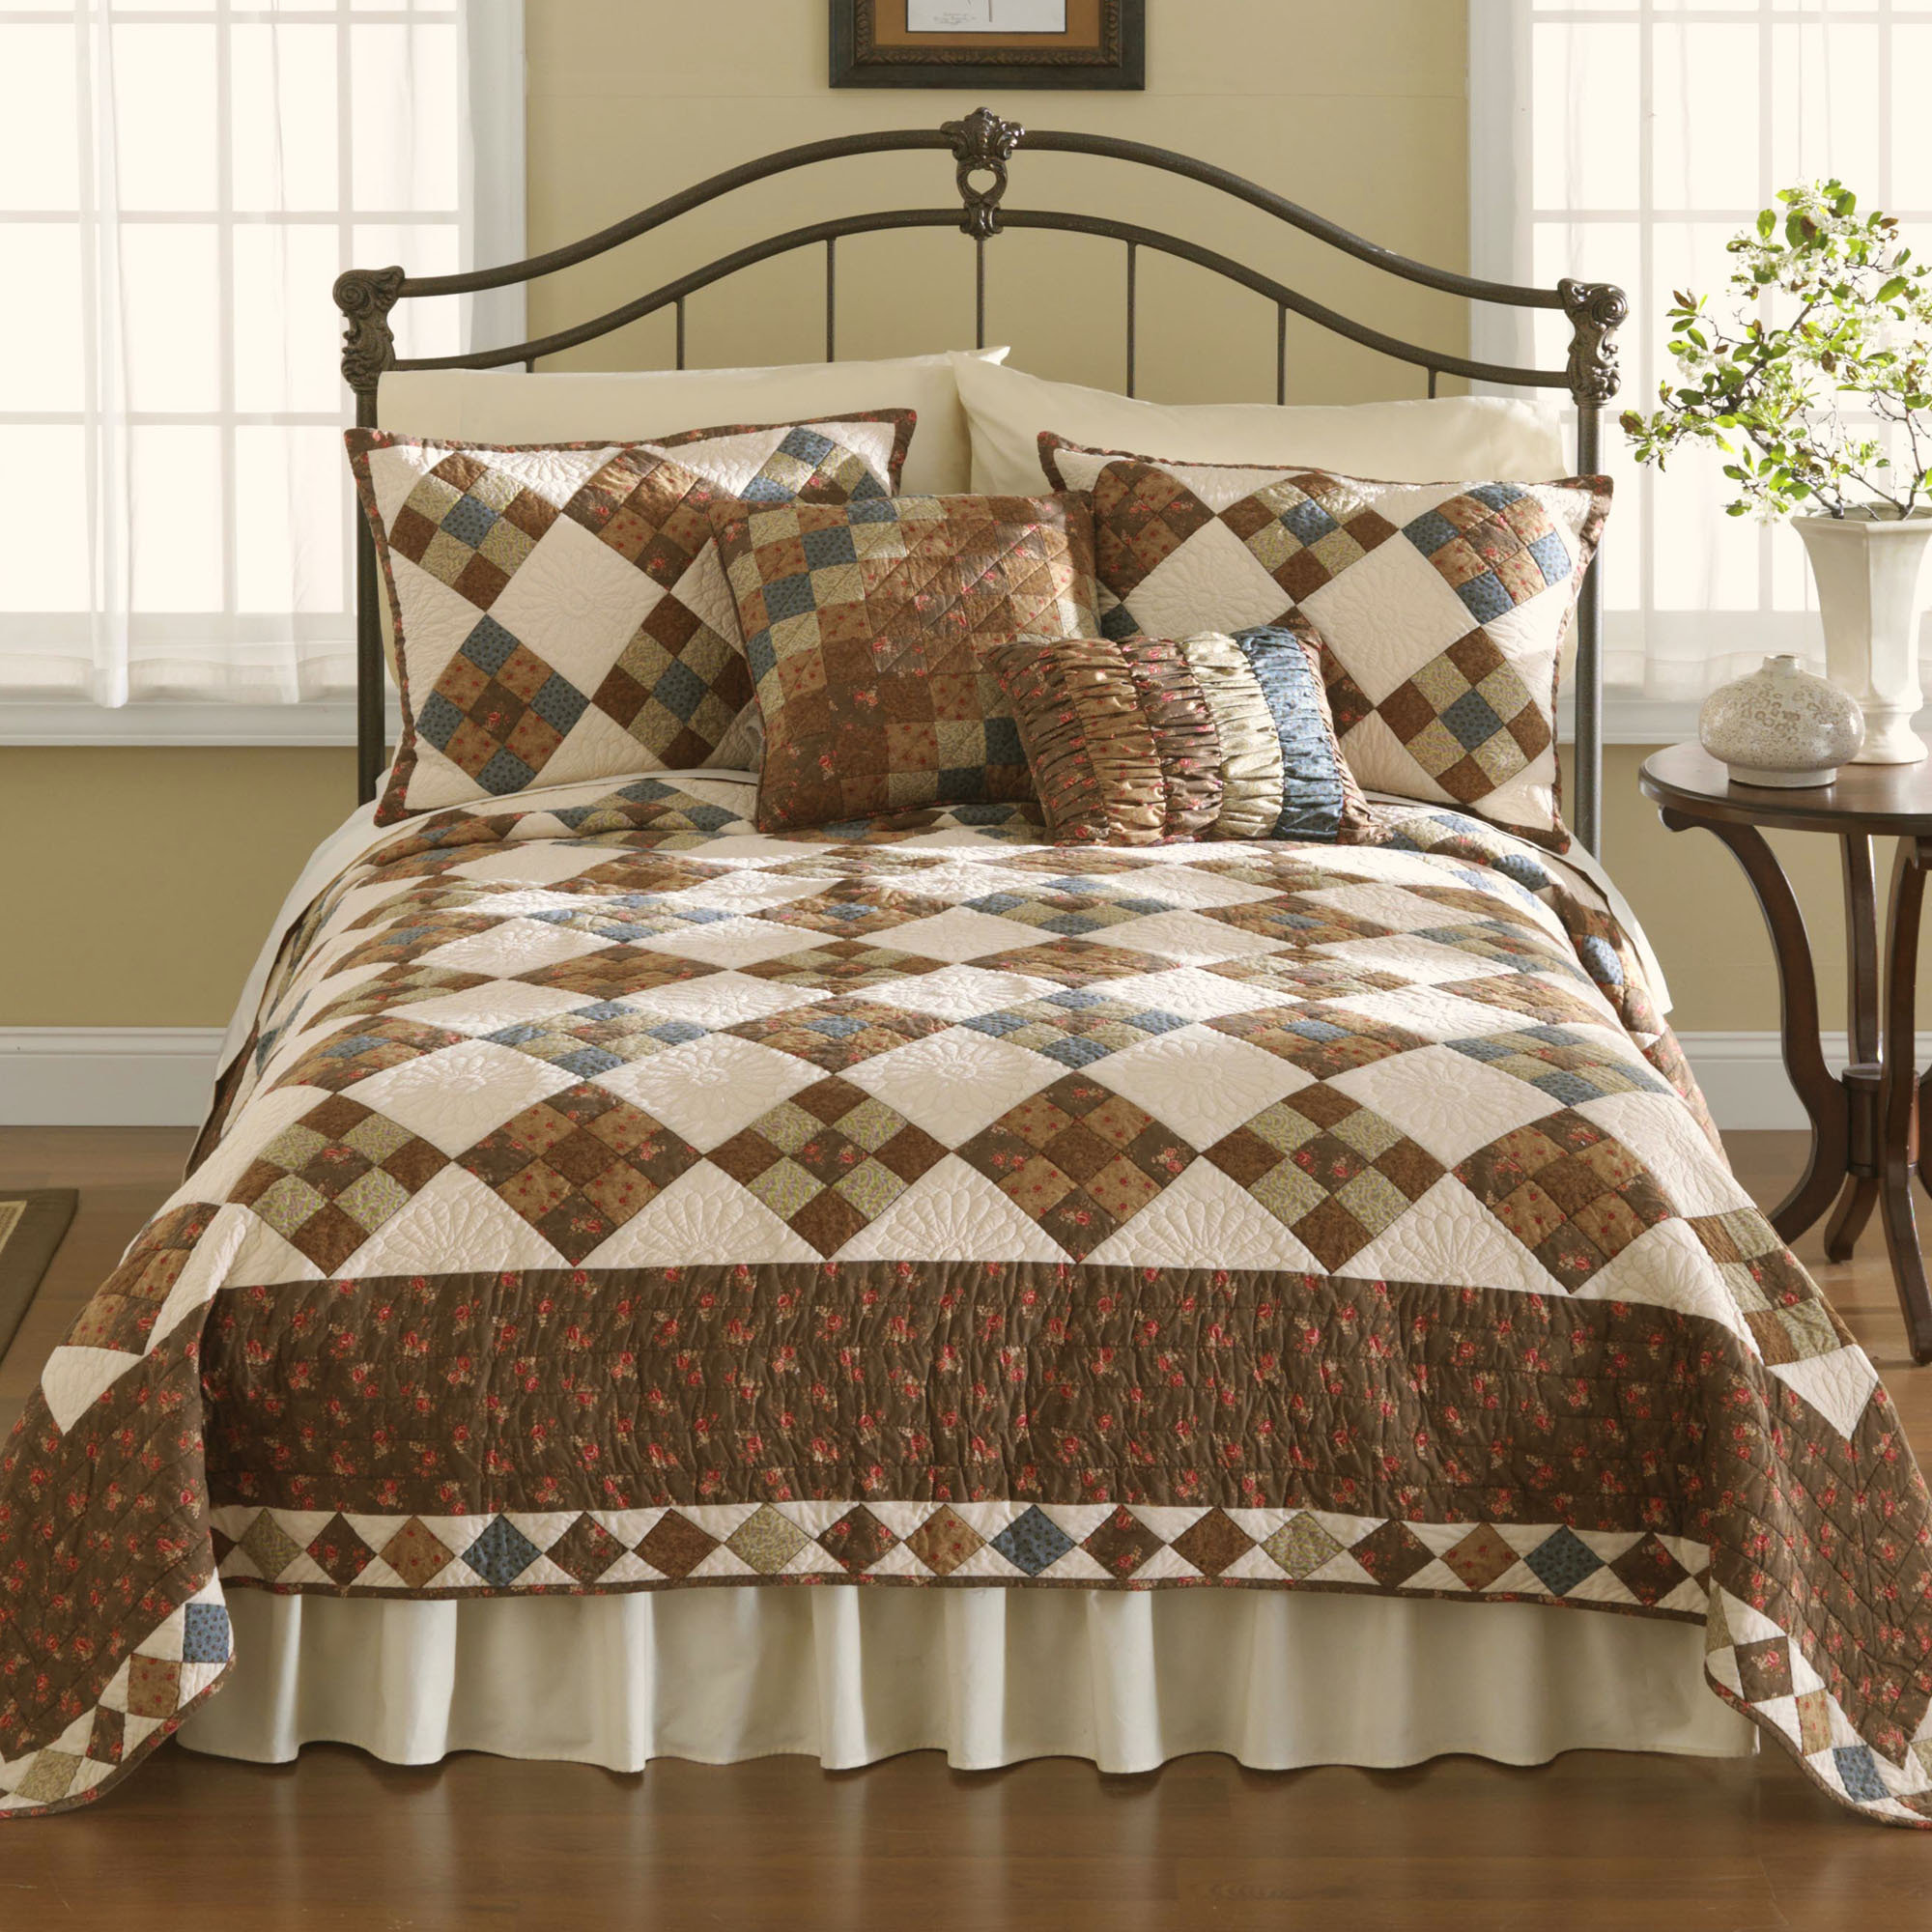 Bed sheet design patchwork - P023 001